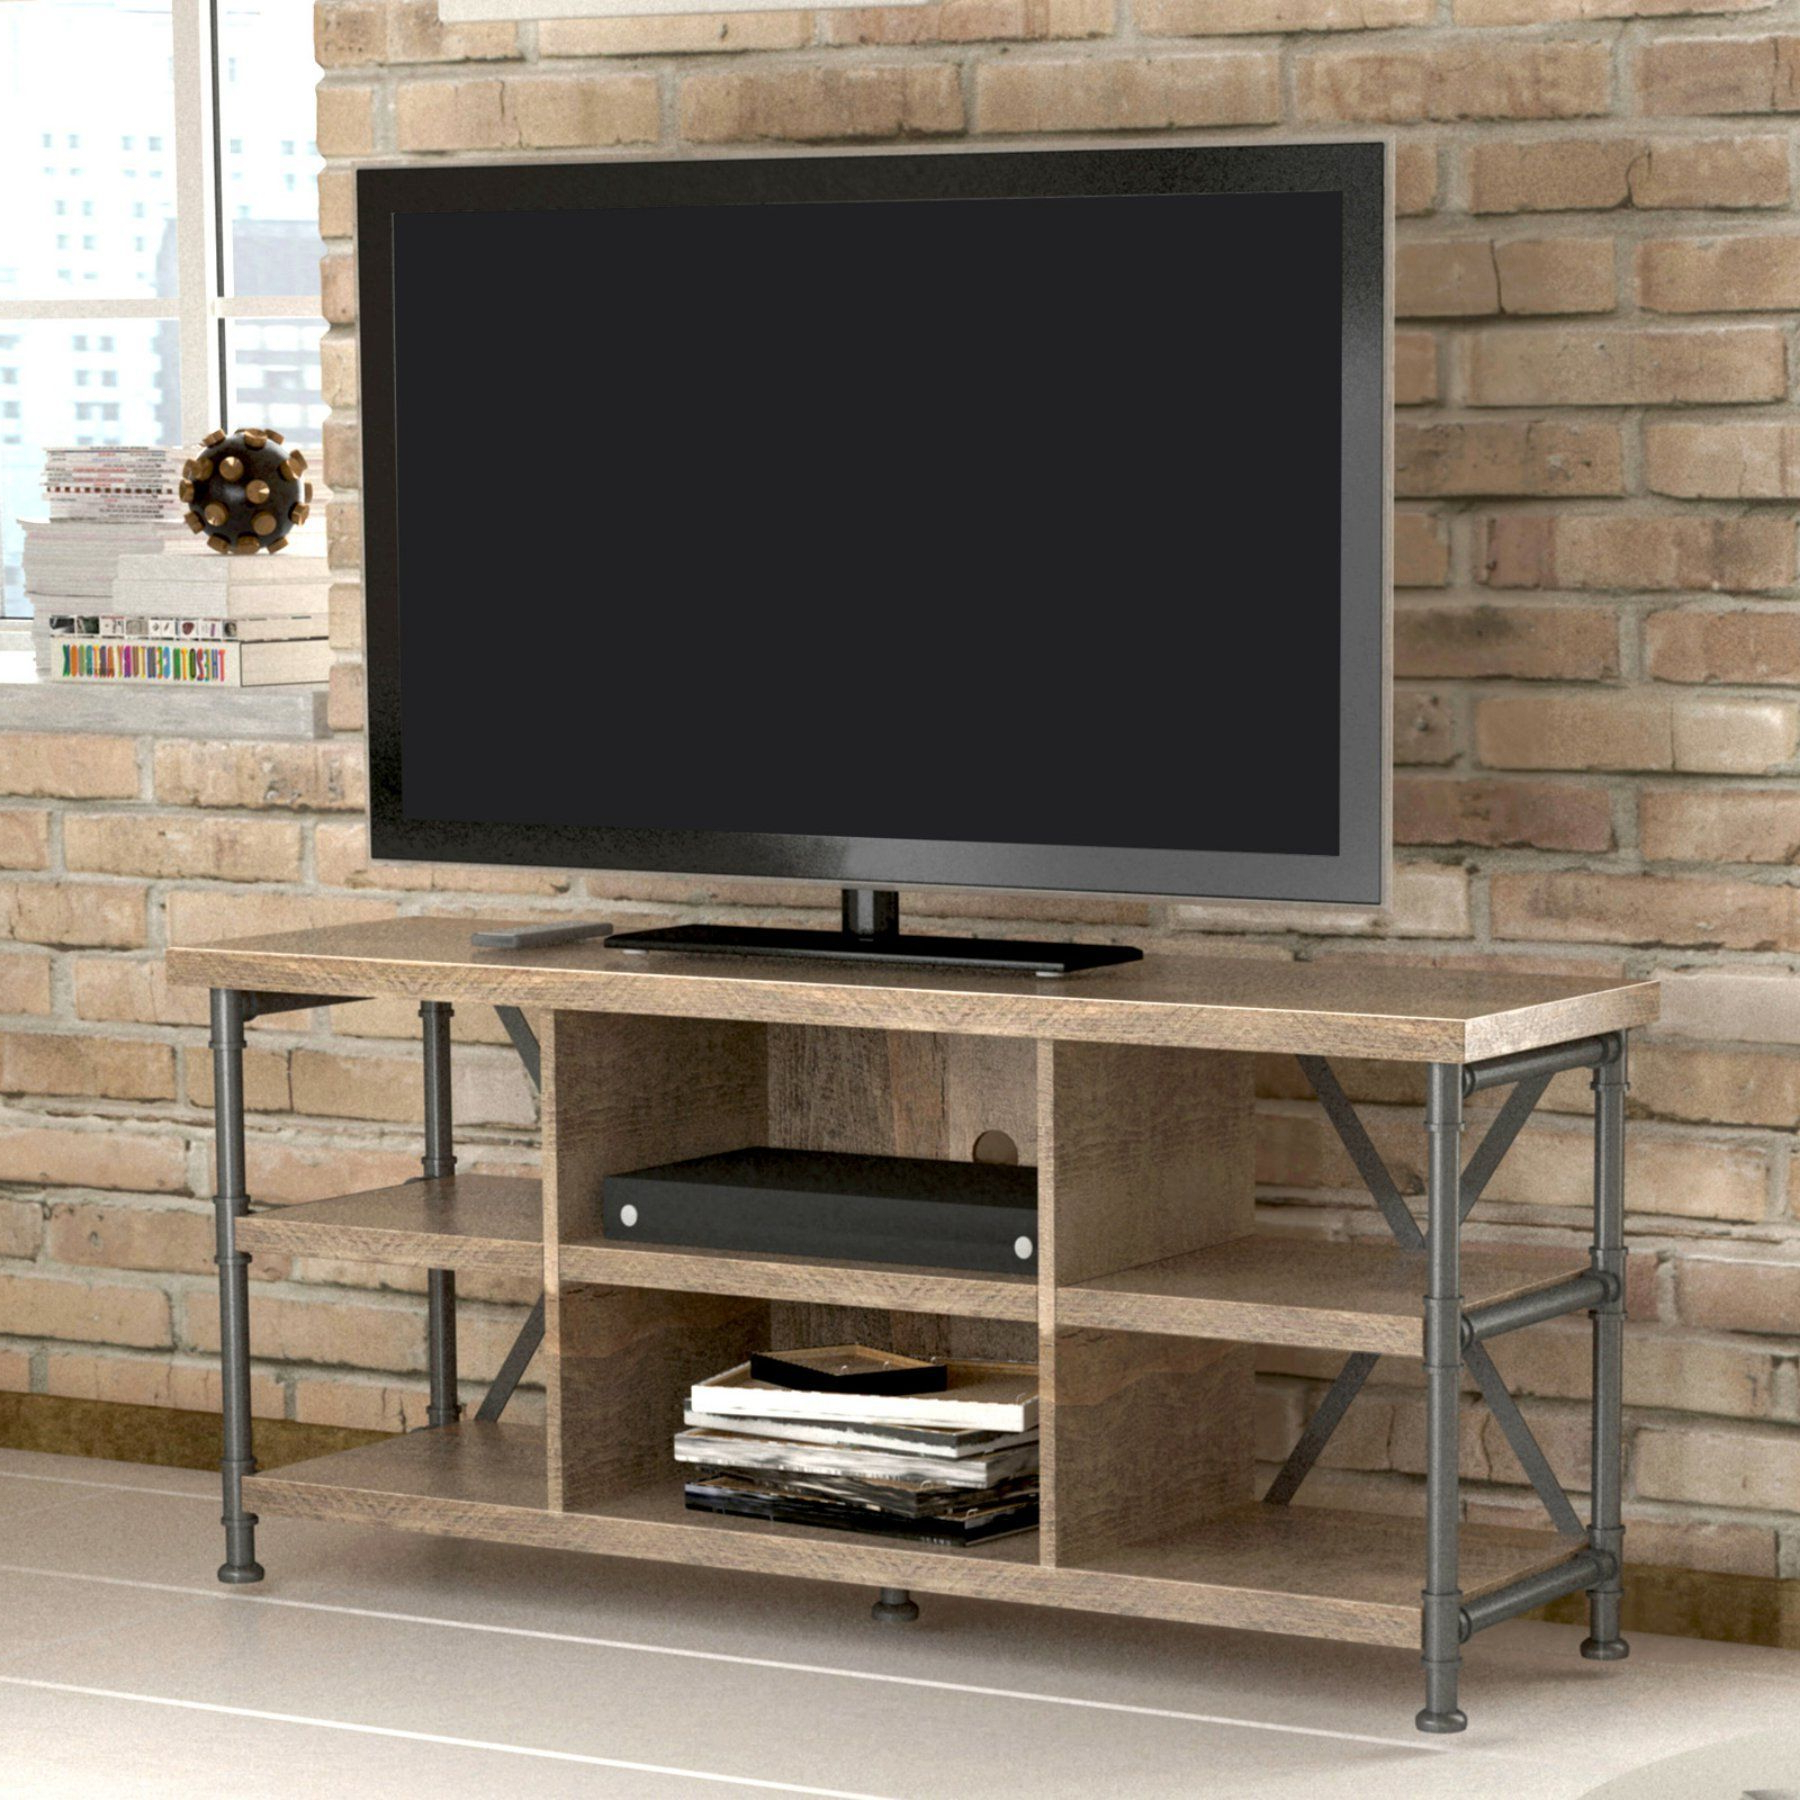 Bello Irondale 54 In. Tv Stand – Autumn Driftwood – Tc54 6096 Pd04 Regarding Kilian Grey 60 Inch Tv Stands (Gallery 2 of 20)